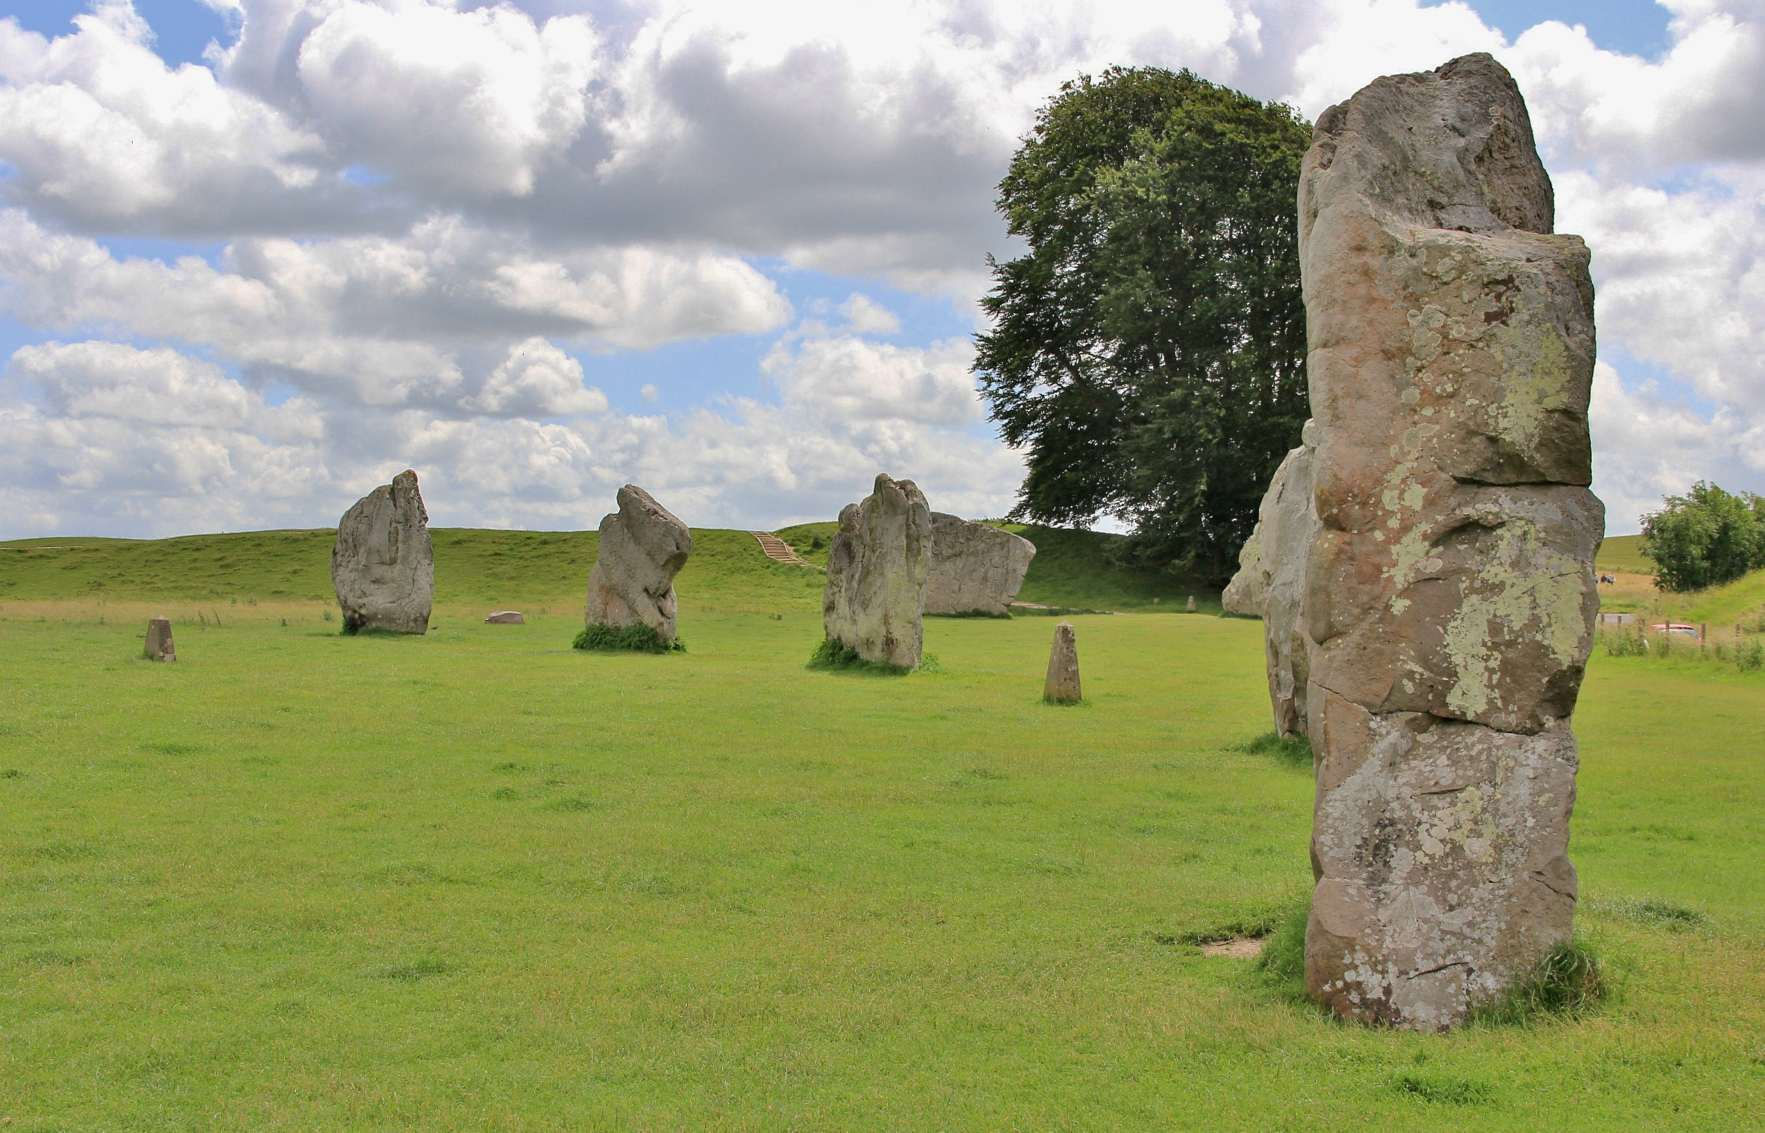 The vast 330m (1,082ft) wide stone circle of Avebury was built between about 2850 BC and 2200 BC. Containing three stone circles and boasting 100 huge standing stones originally, it has been the subject of considerable archaeological interest since the 17th century.